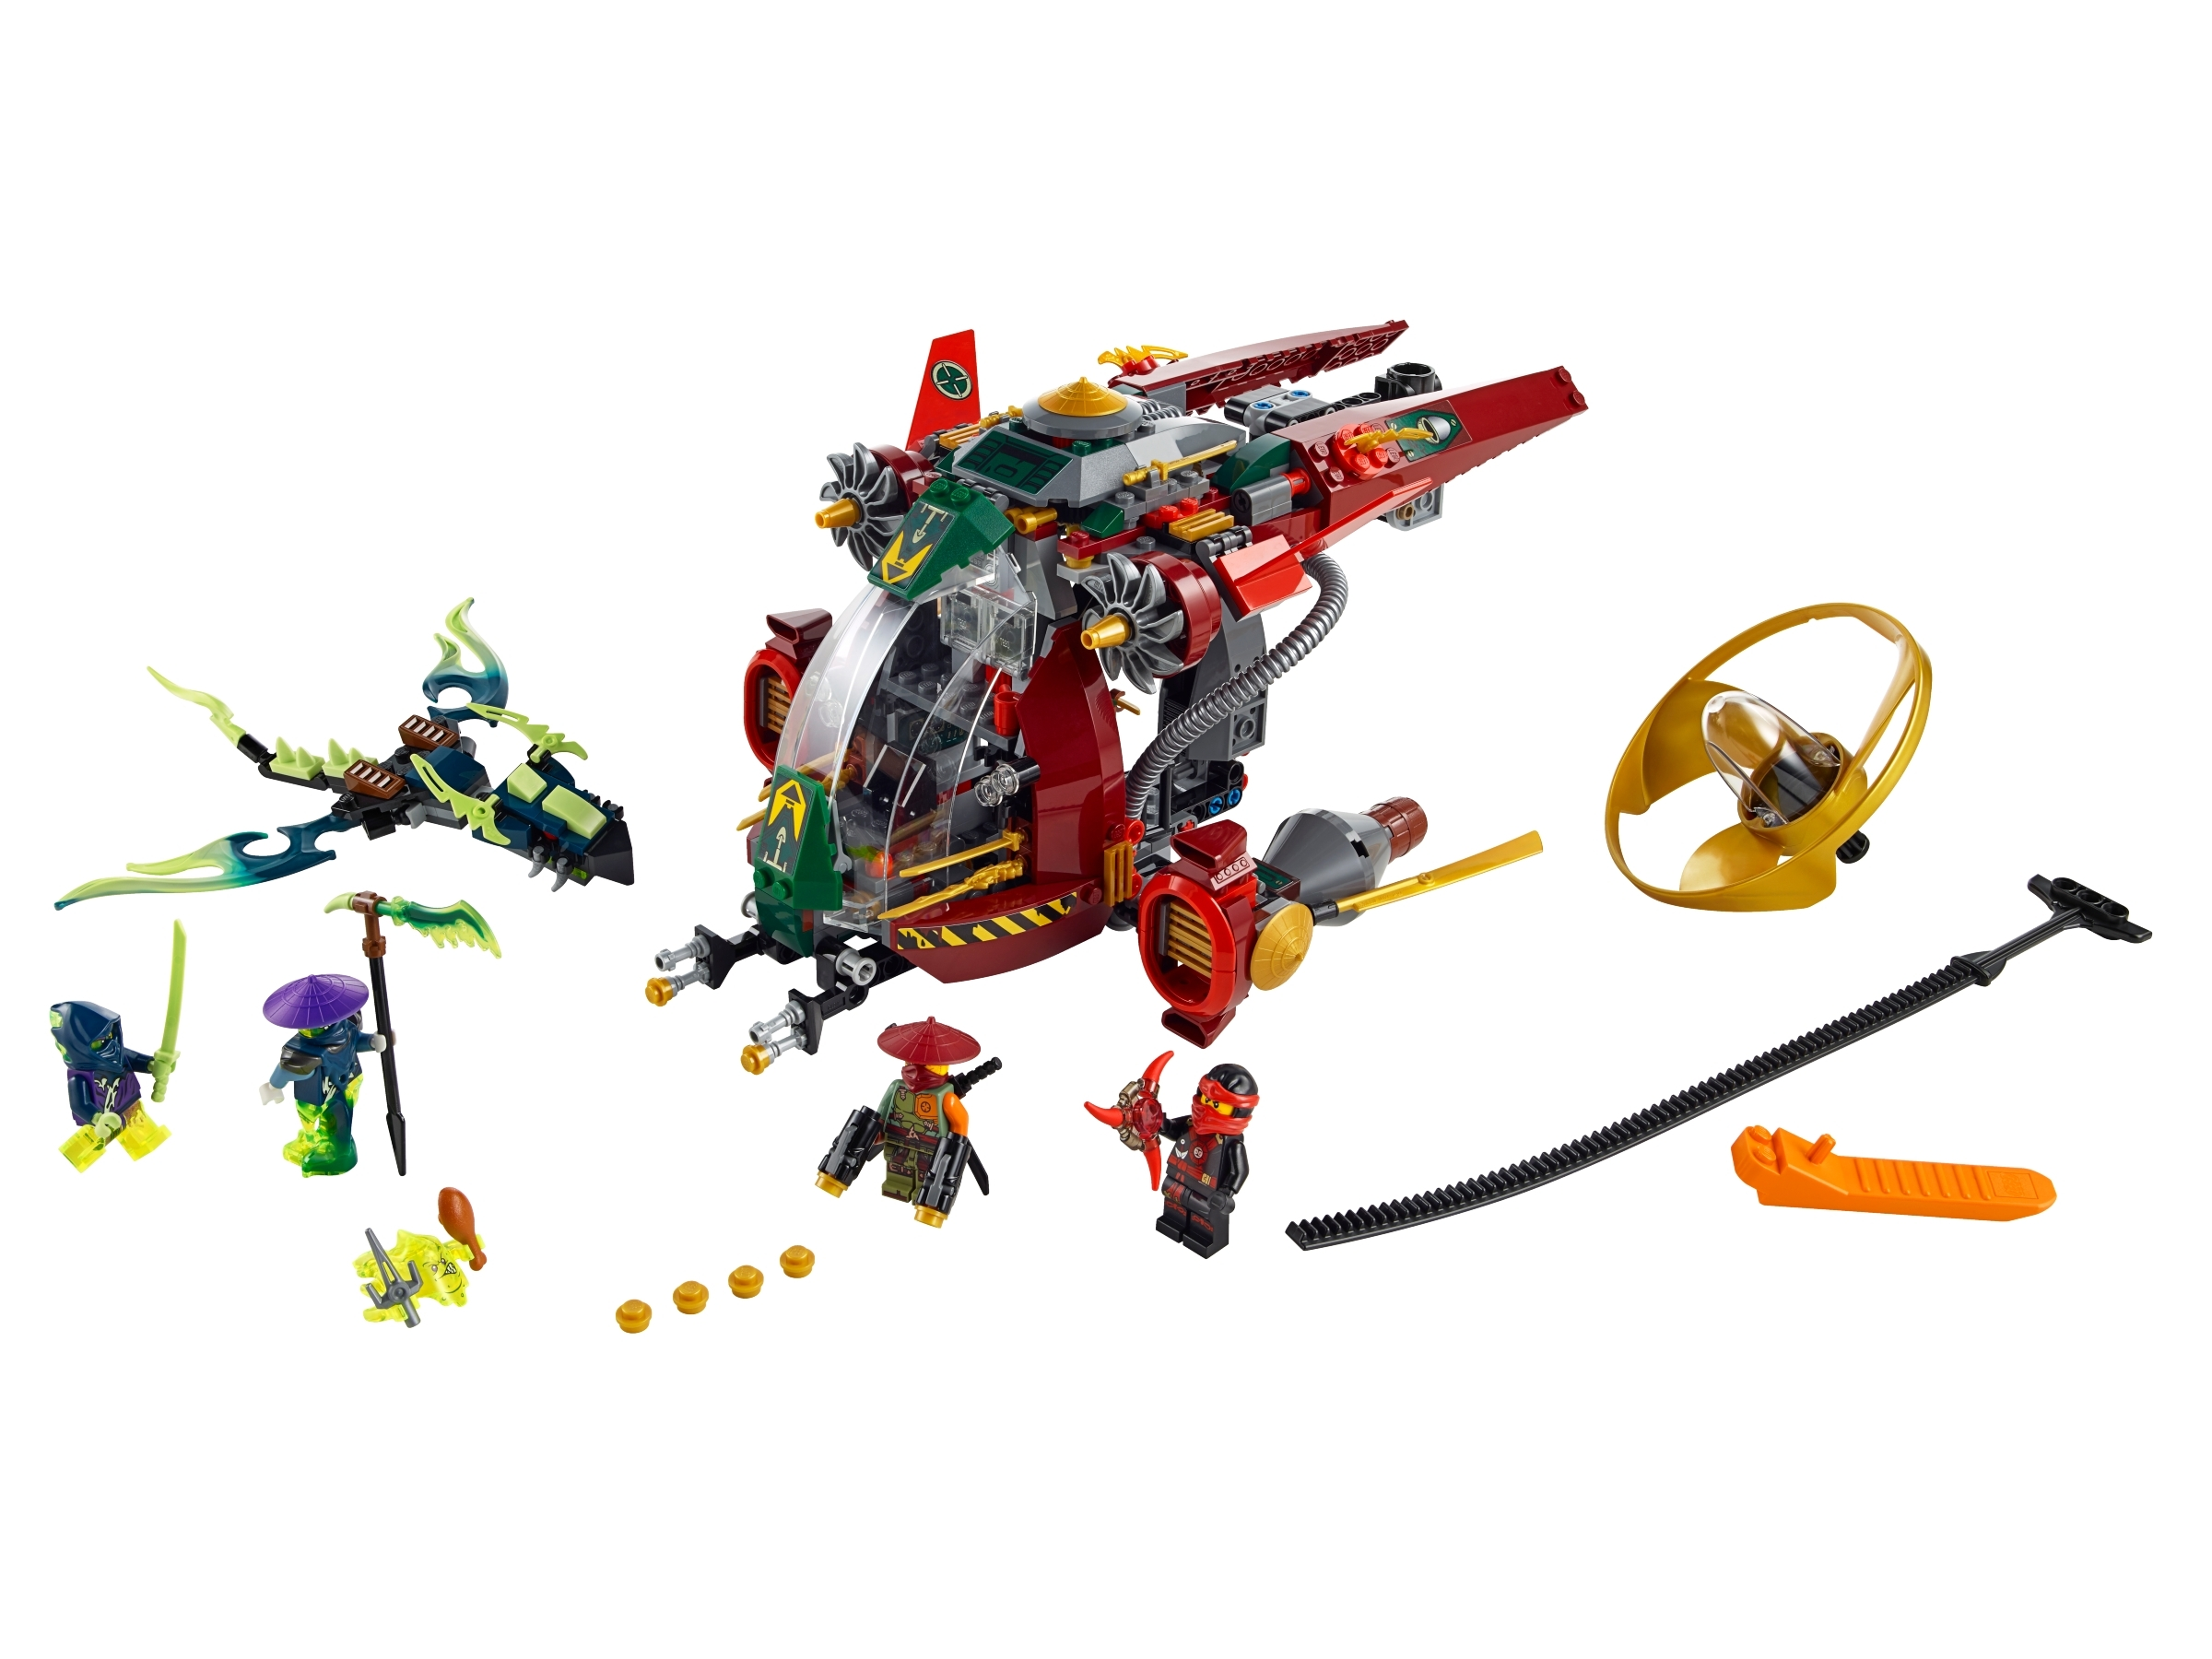 LEGO 70735 Ninjago Skreemer Minifigure split from set 70735